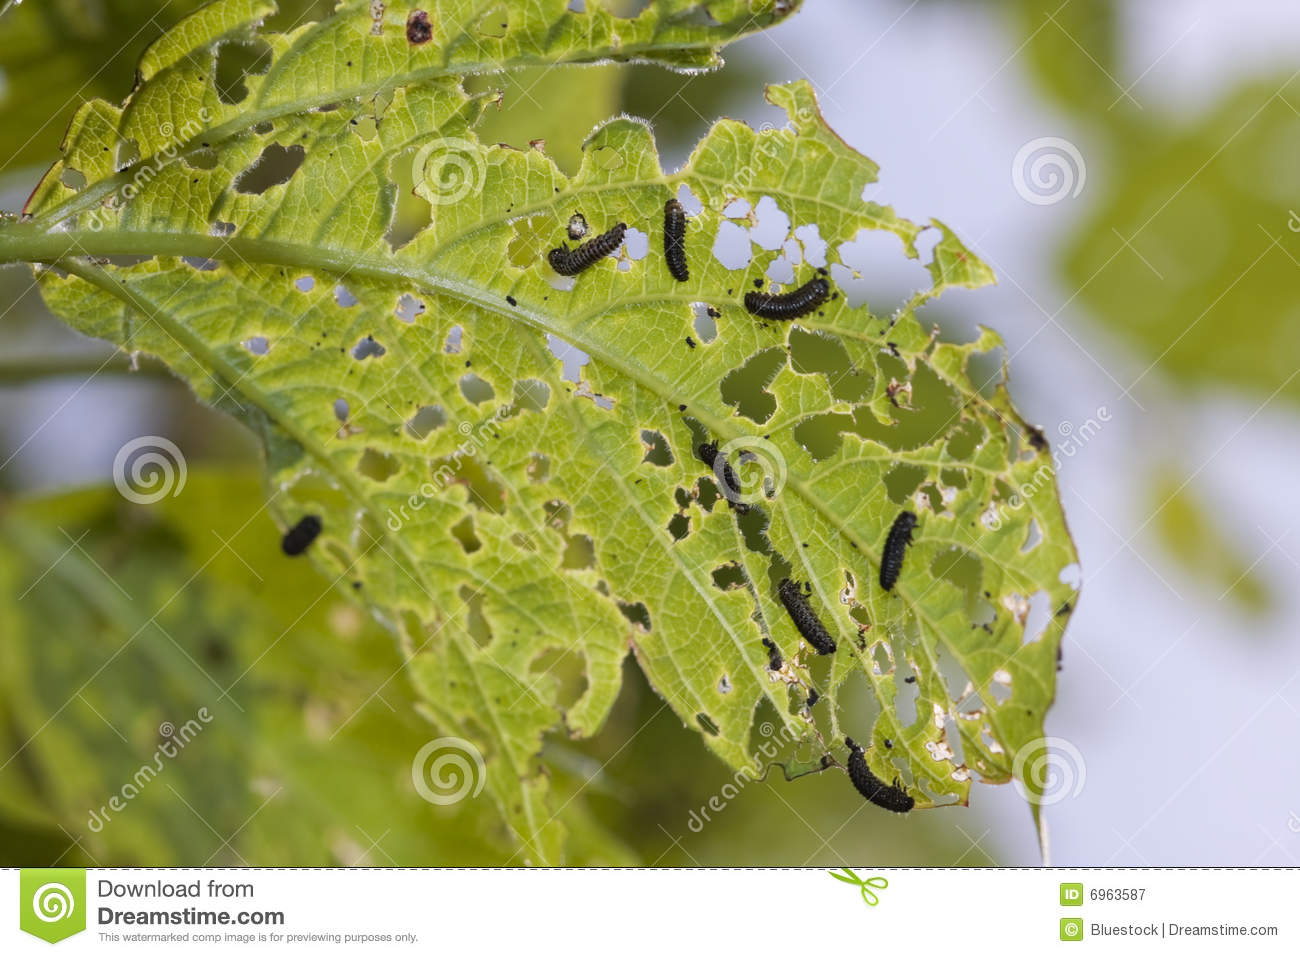 Caterpillars chewing a leaf